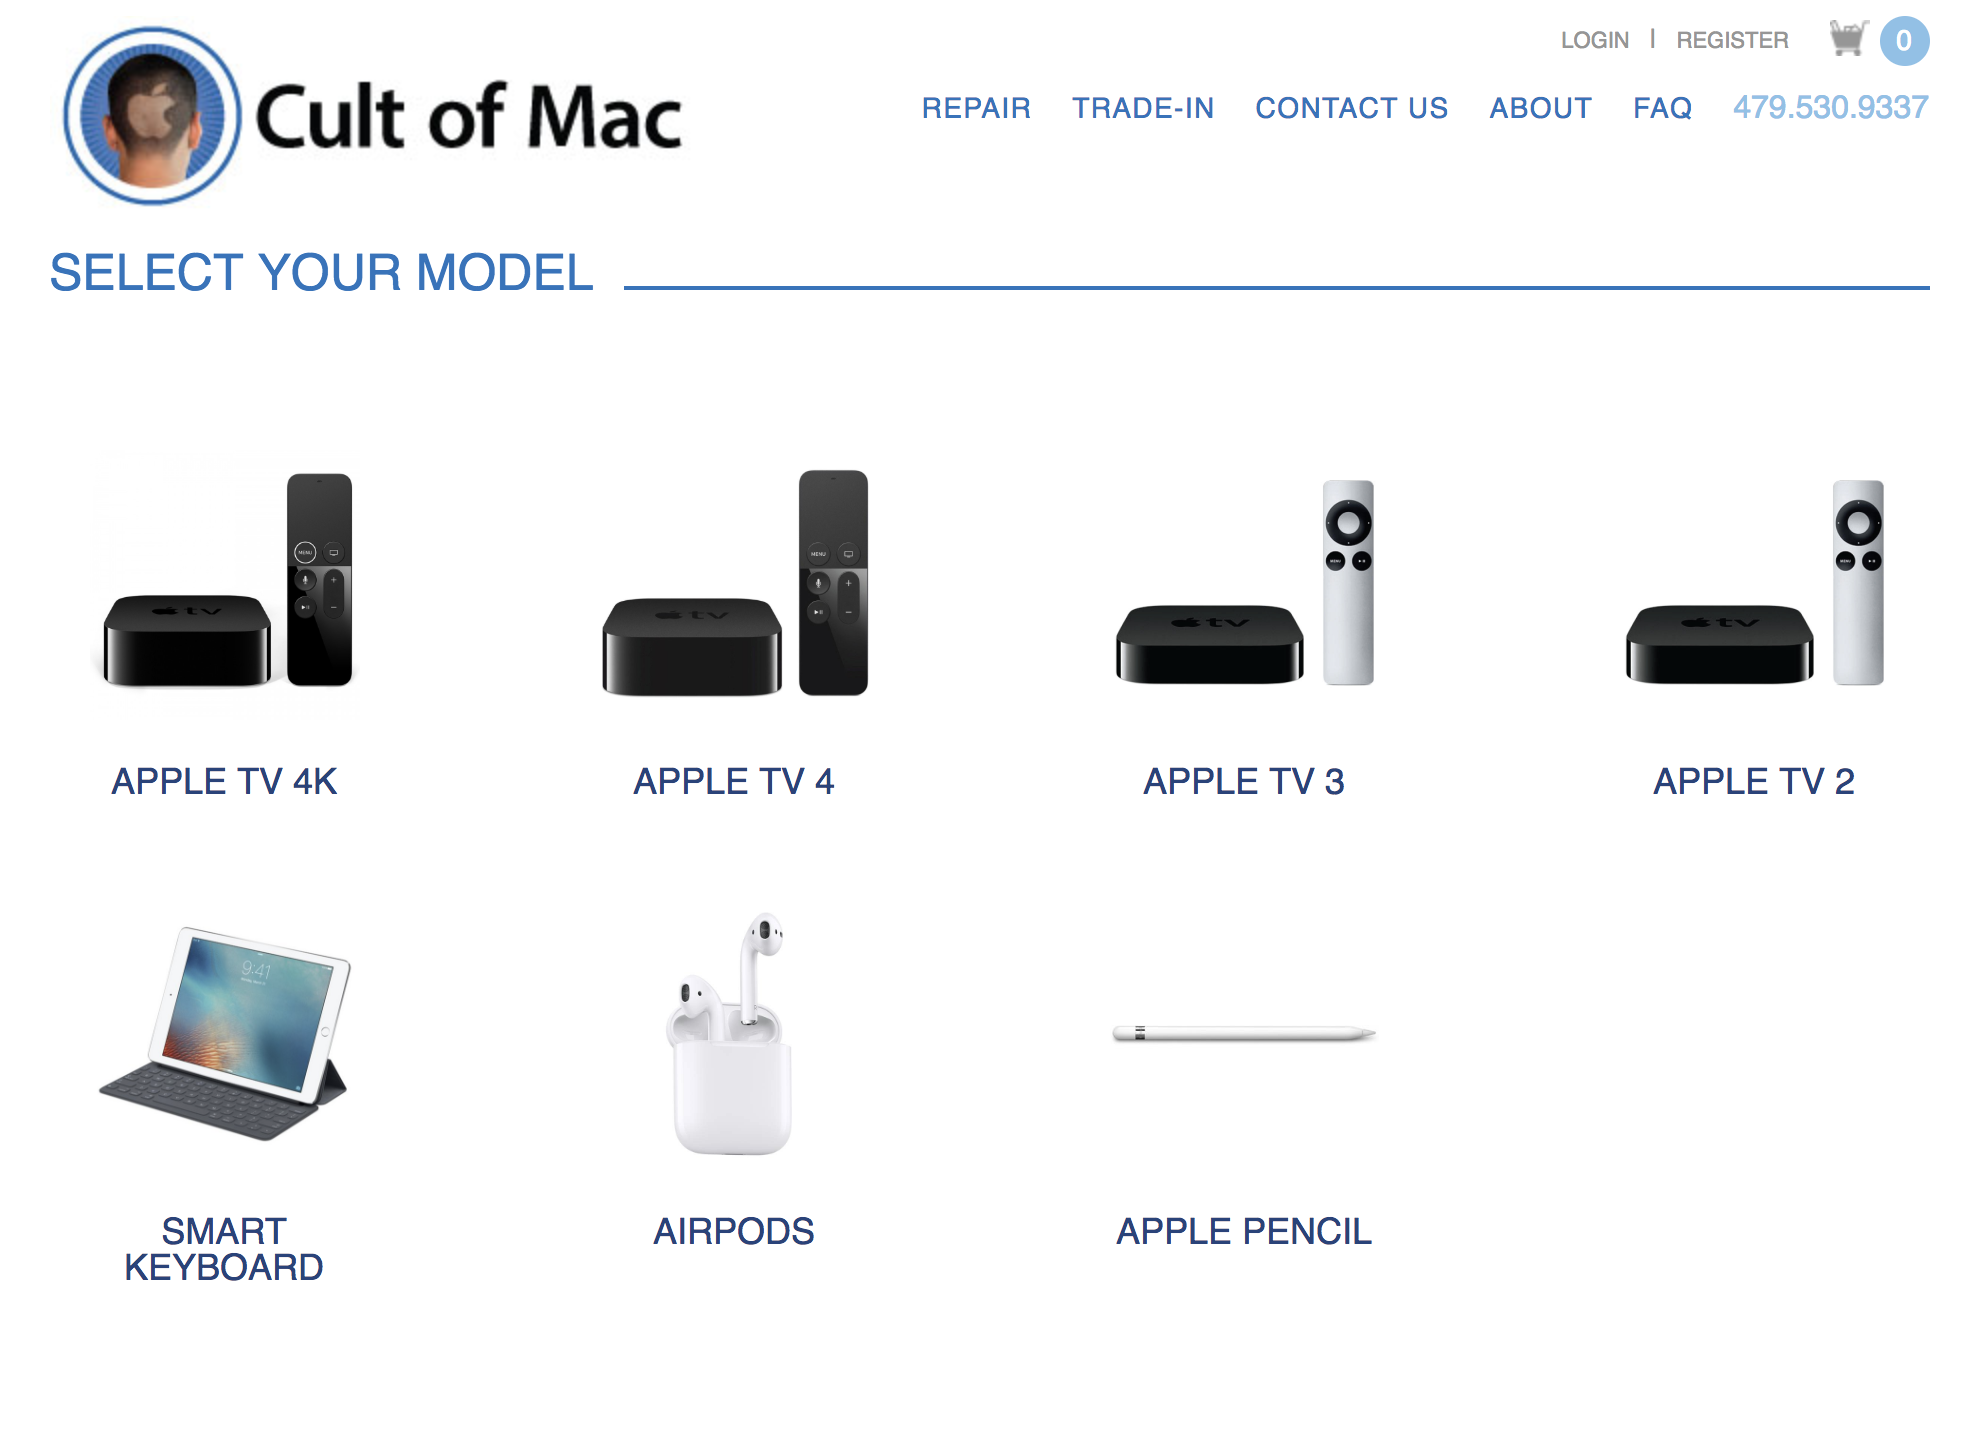 Cult of Mac buyback program now buys used Apple accessories, including Apple Pencil, Smart Keyboard and AirPods.